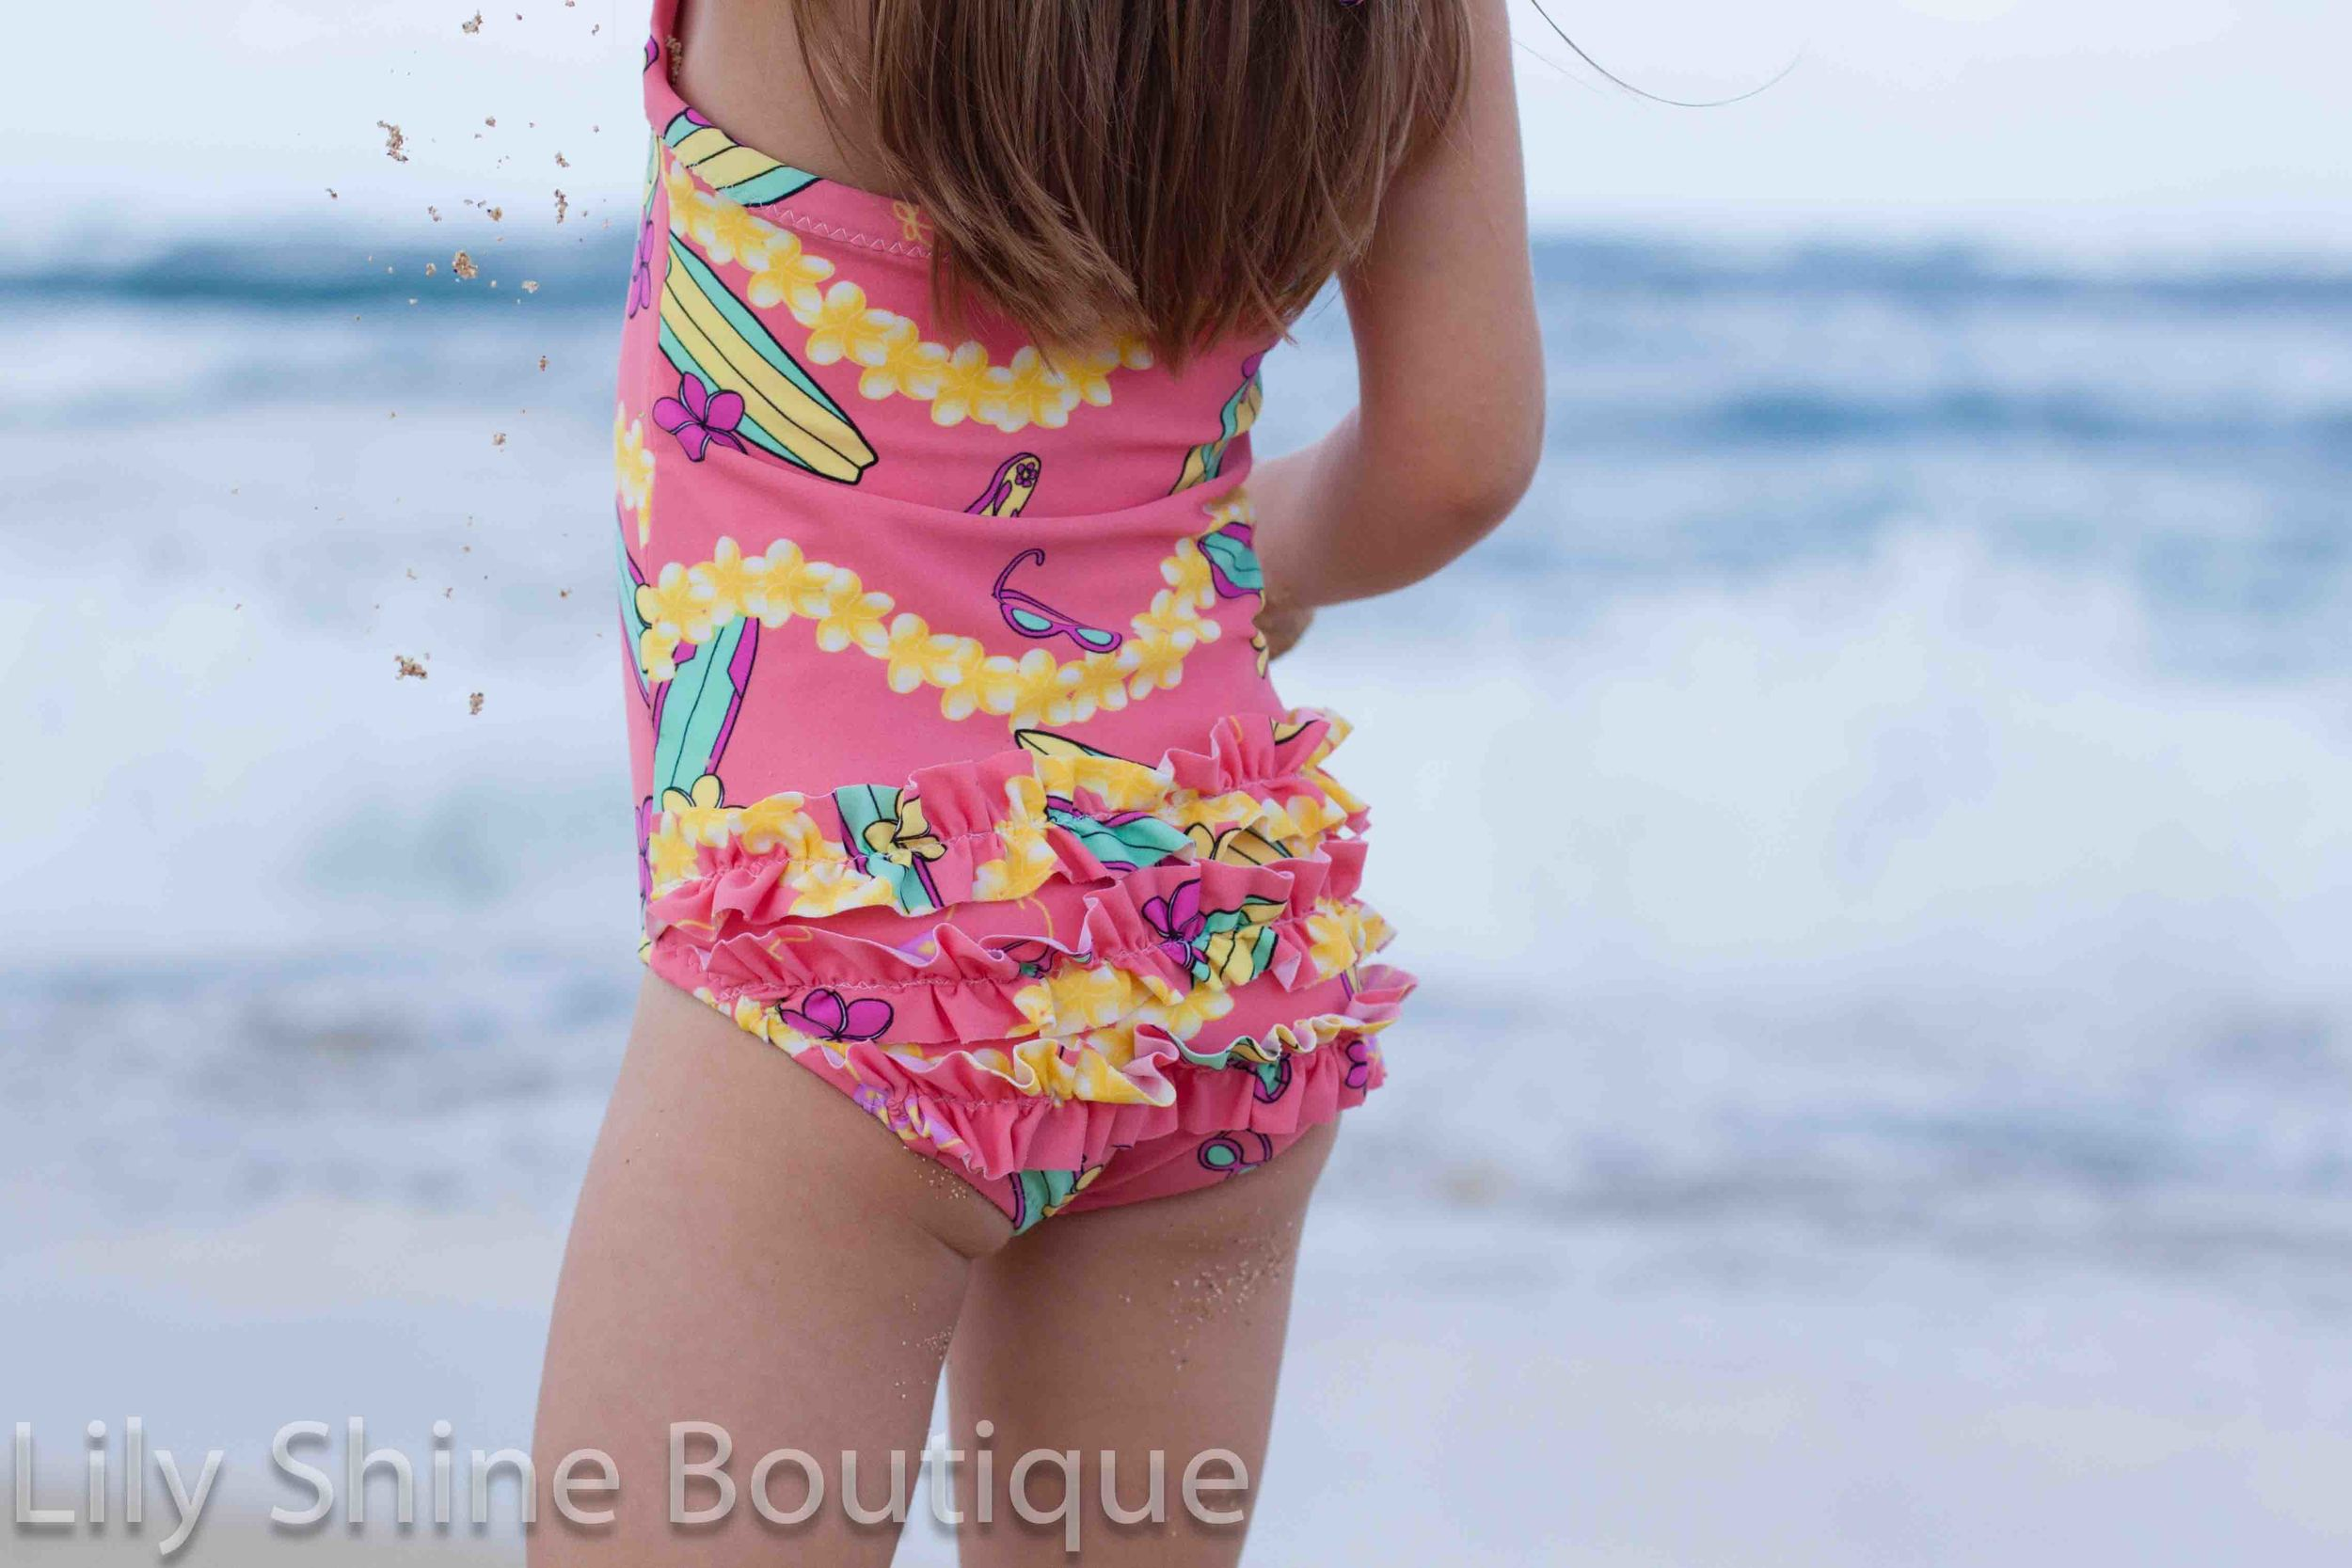 The three bum ruffles are extra adorable for the little ones, and easy to omit for the older gals!